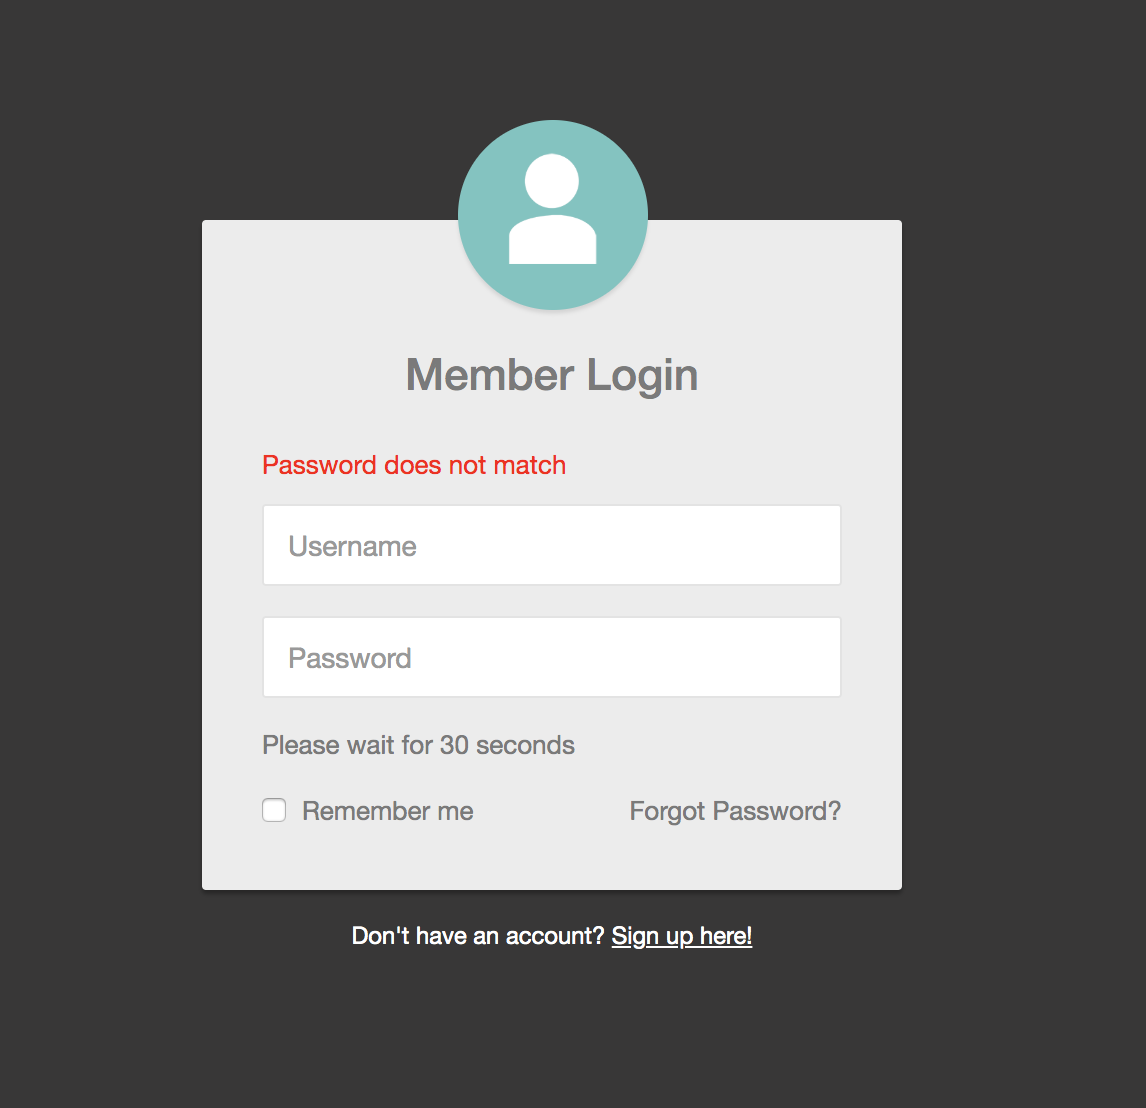 Prevent user from login for 30 seconds after 3 failed login attempts - PHP